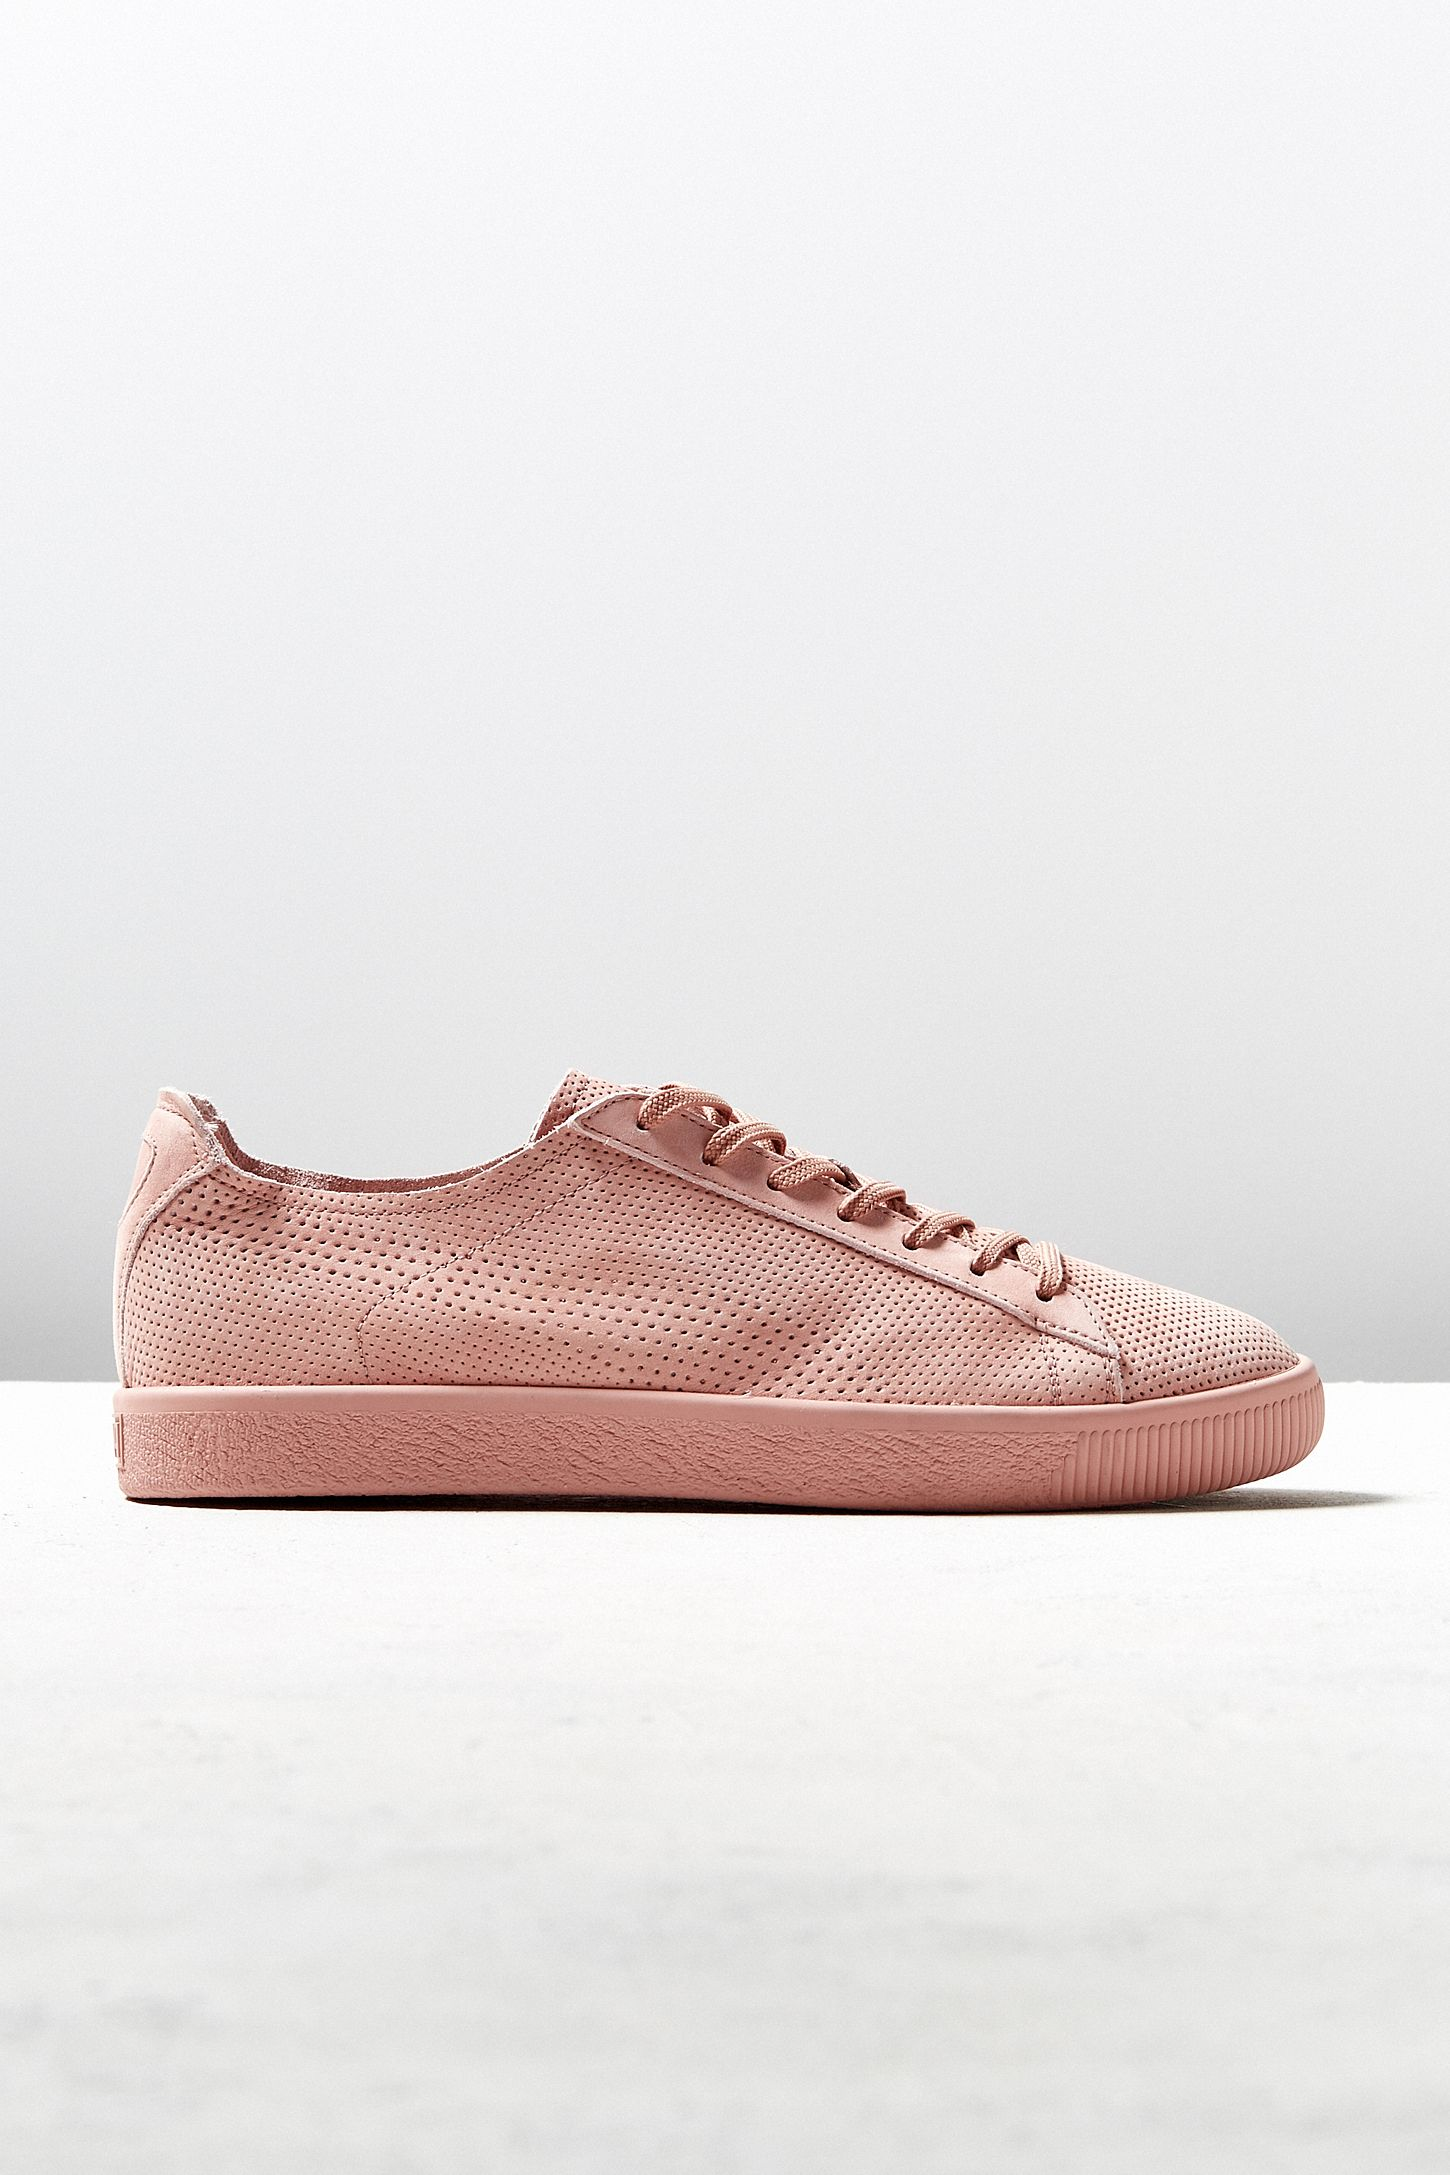 065432a5e01 Puma X Stampd Clyde Sneaker | Urban Outfitters